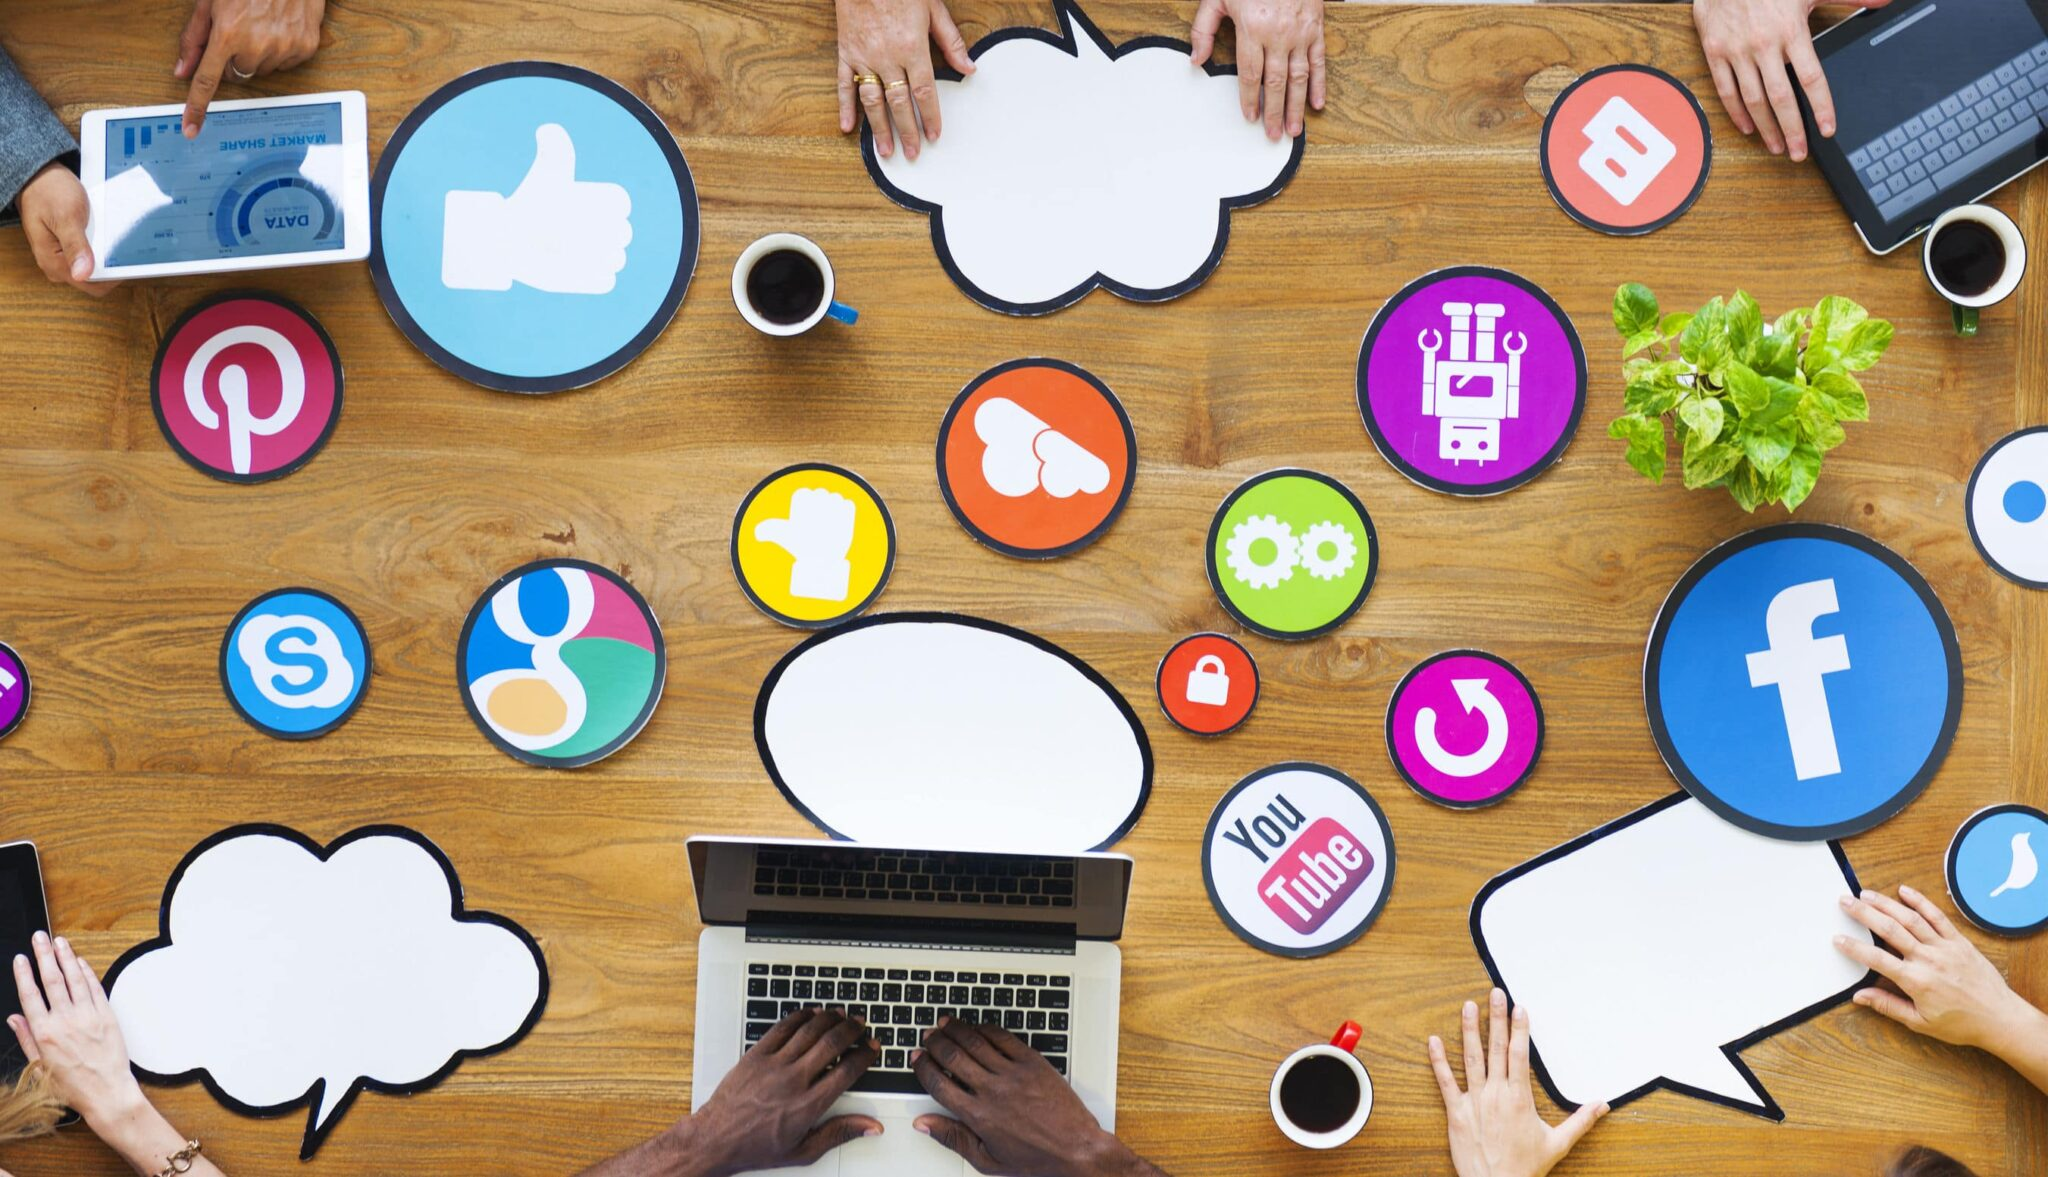 How to Make the Most of Your Social Media Marketing Internationally